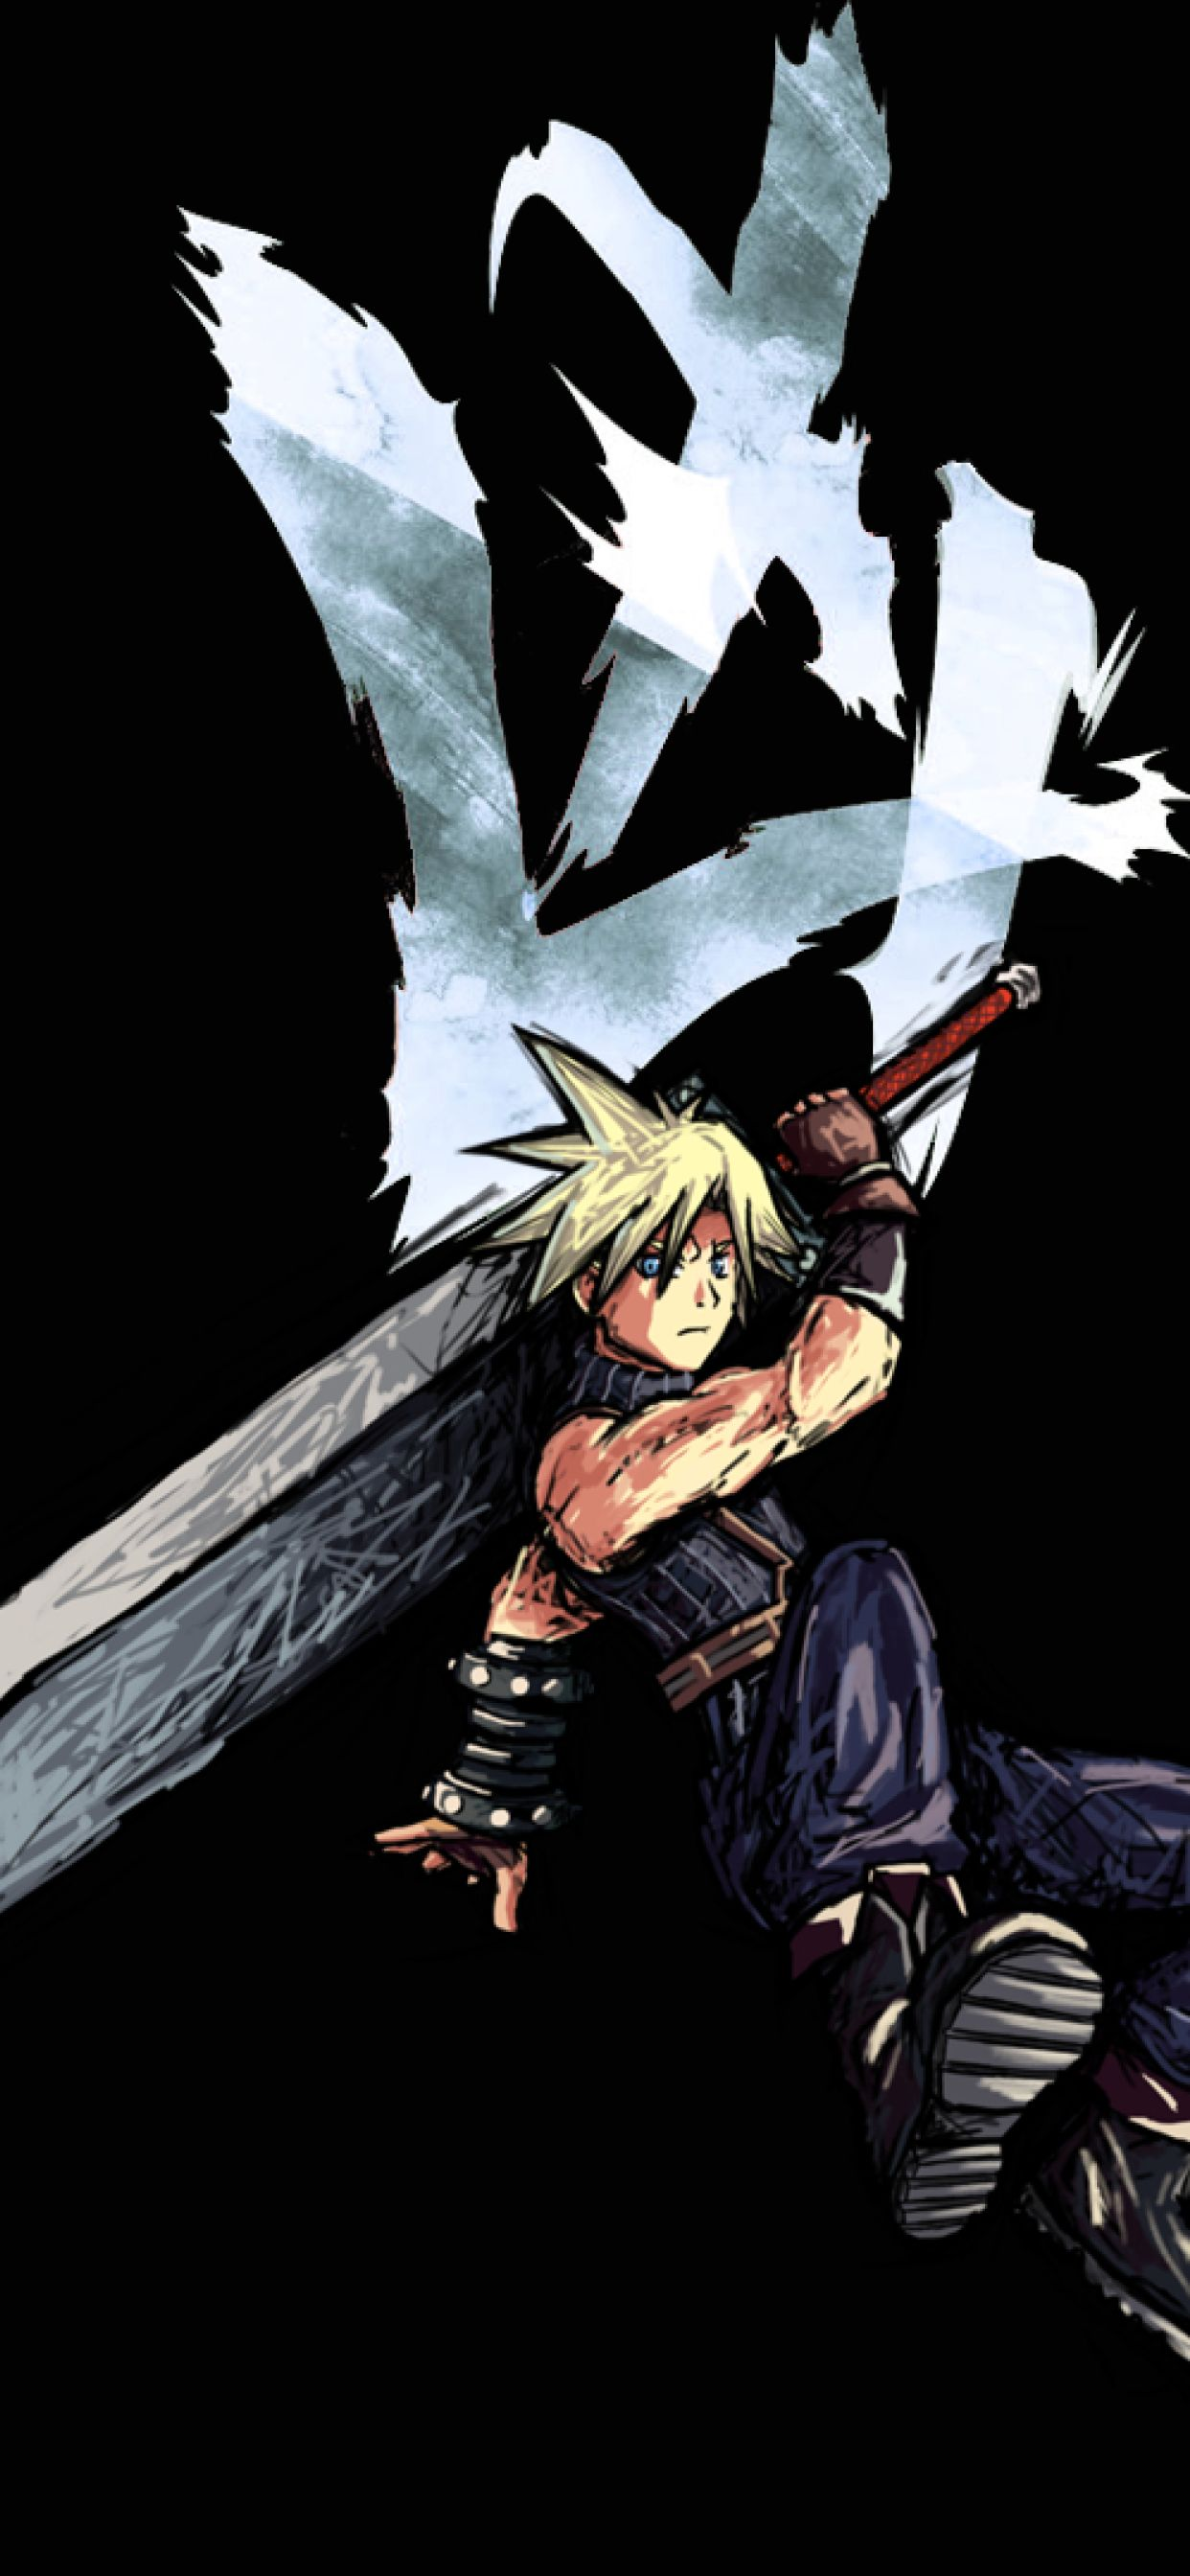 Final Fantasy Iphone Wallpapers Top Free Final Fantasy Iphone Backgrounds Wallpaperaccess